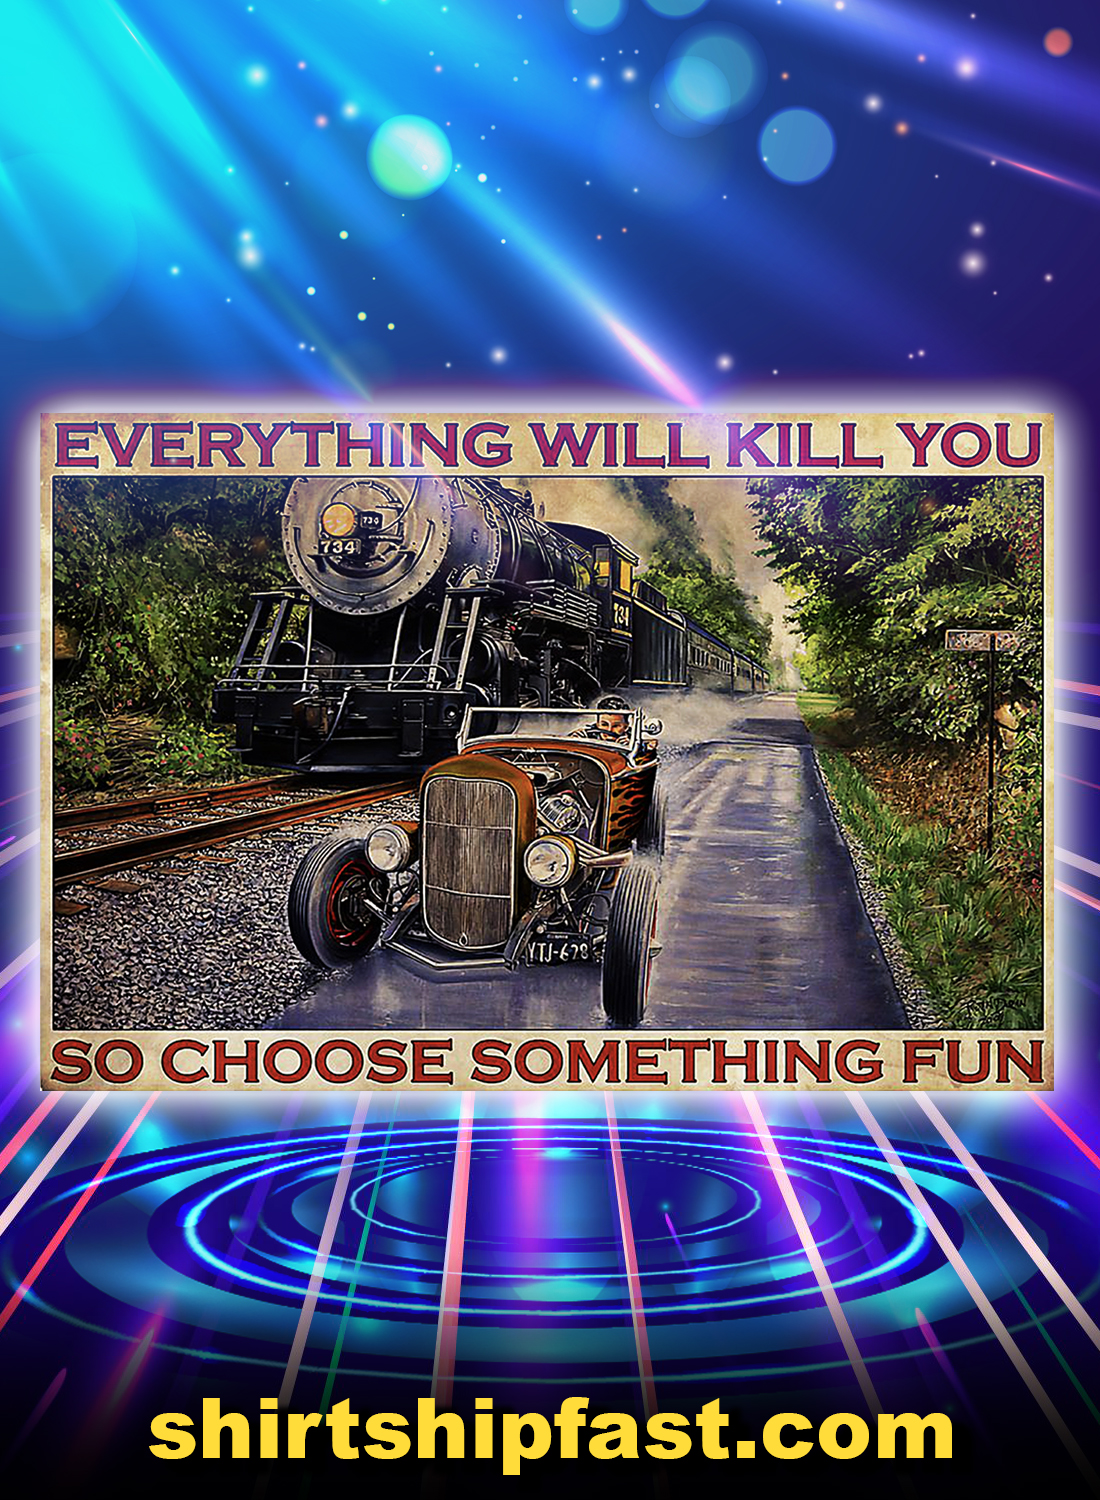 Hot rod car and train racing everything will kill you so choose something fun poster - A4